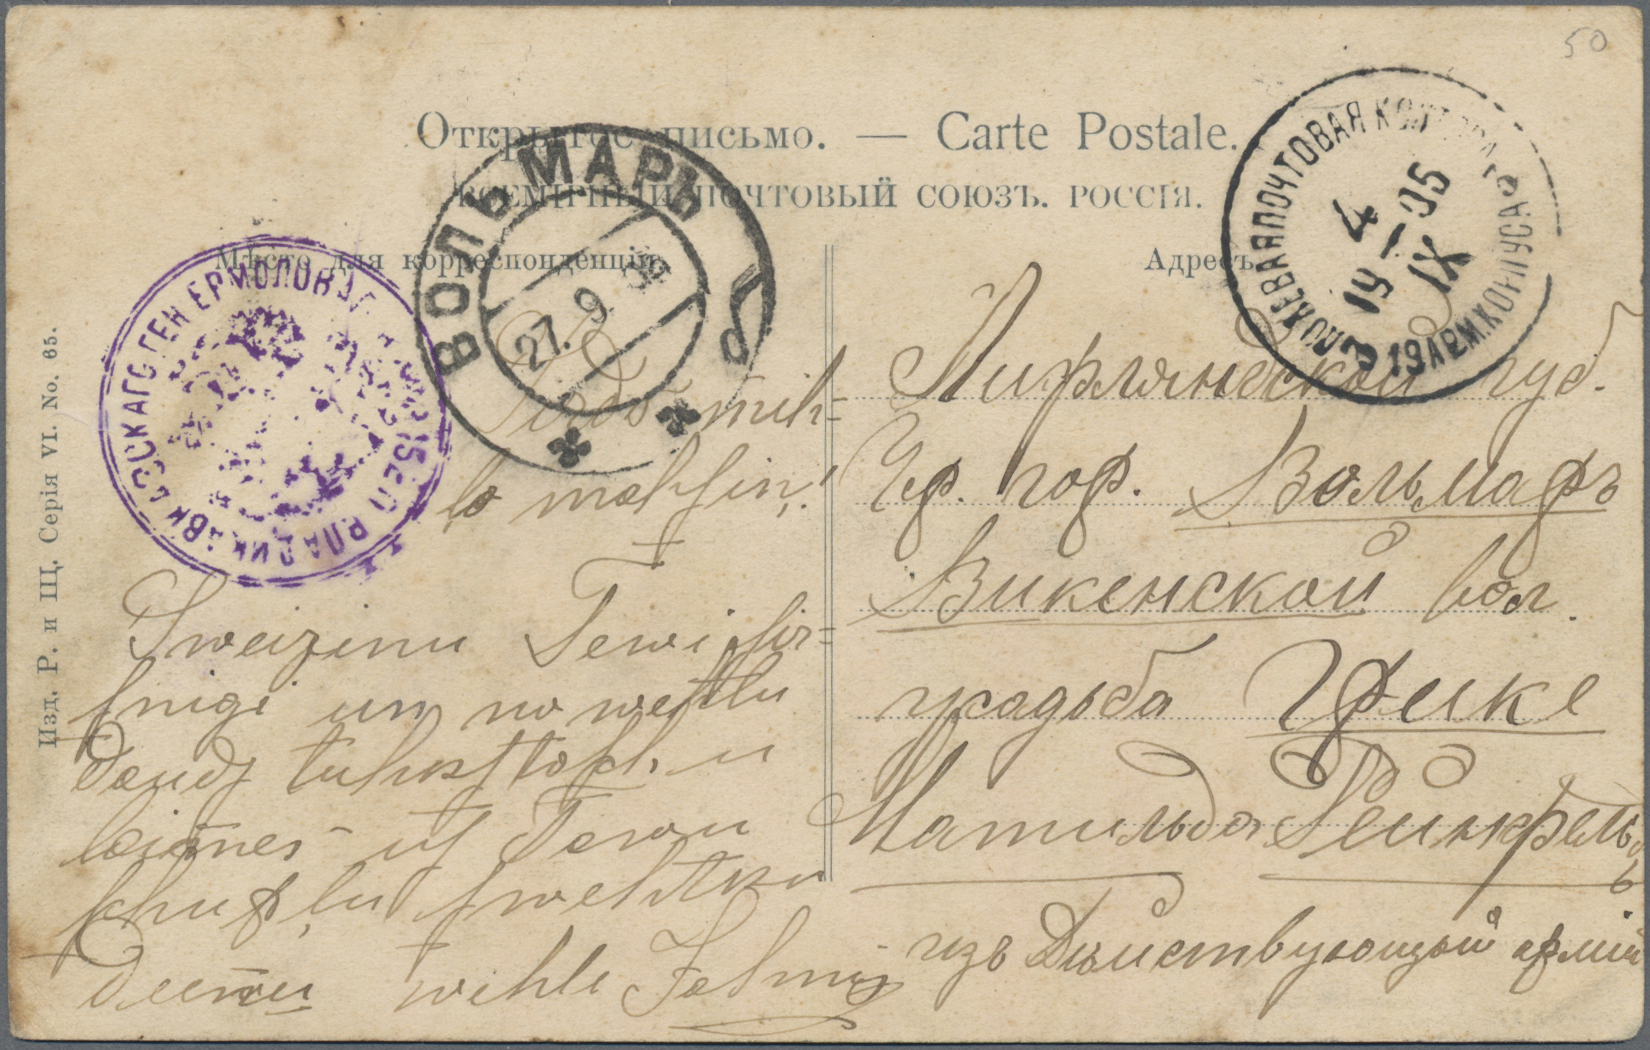 Lot 14777 - russische post in china  -  Auktionshaus Christoph Gärtner GmbH & Co. KG Sale #45- ASIA/OVERSEAS/EUROPE